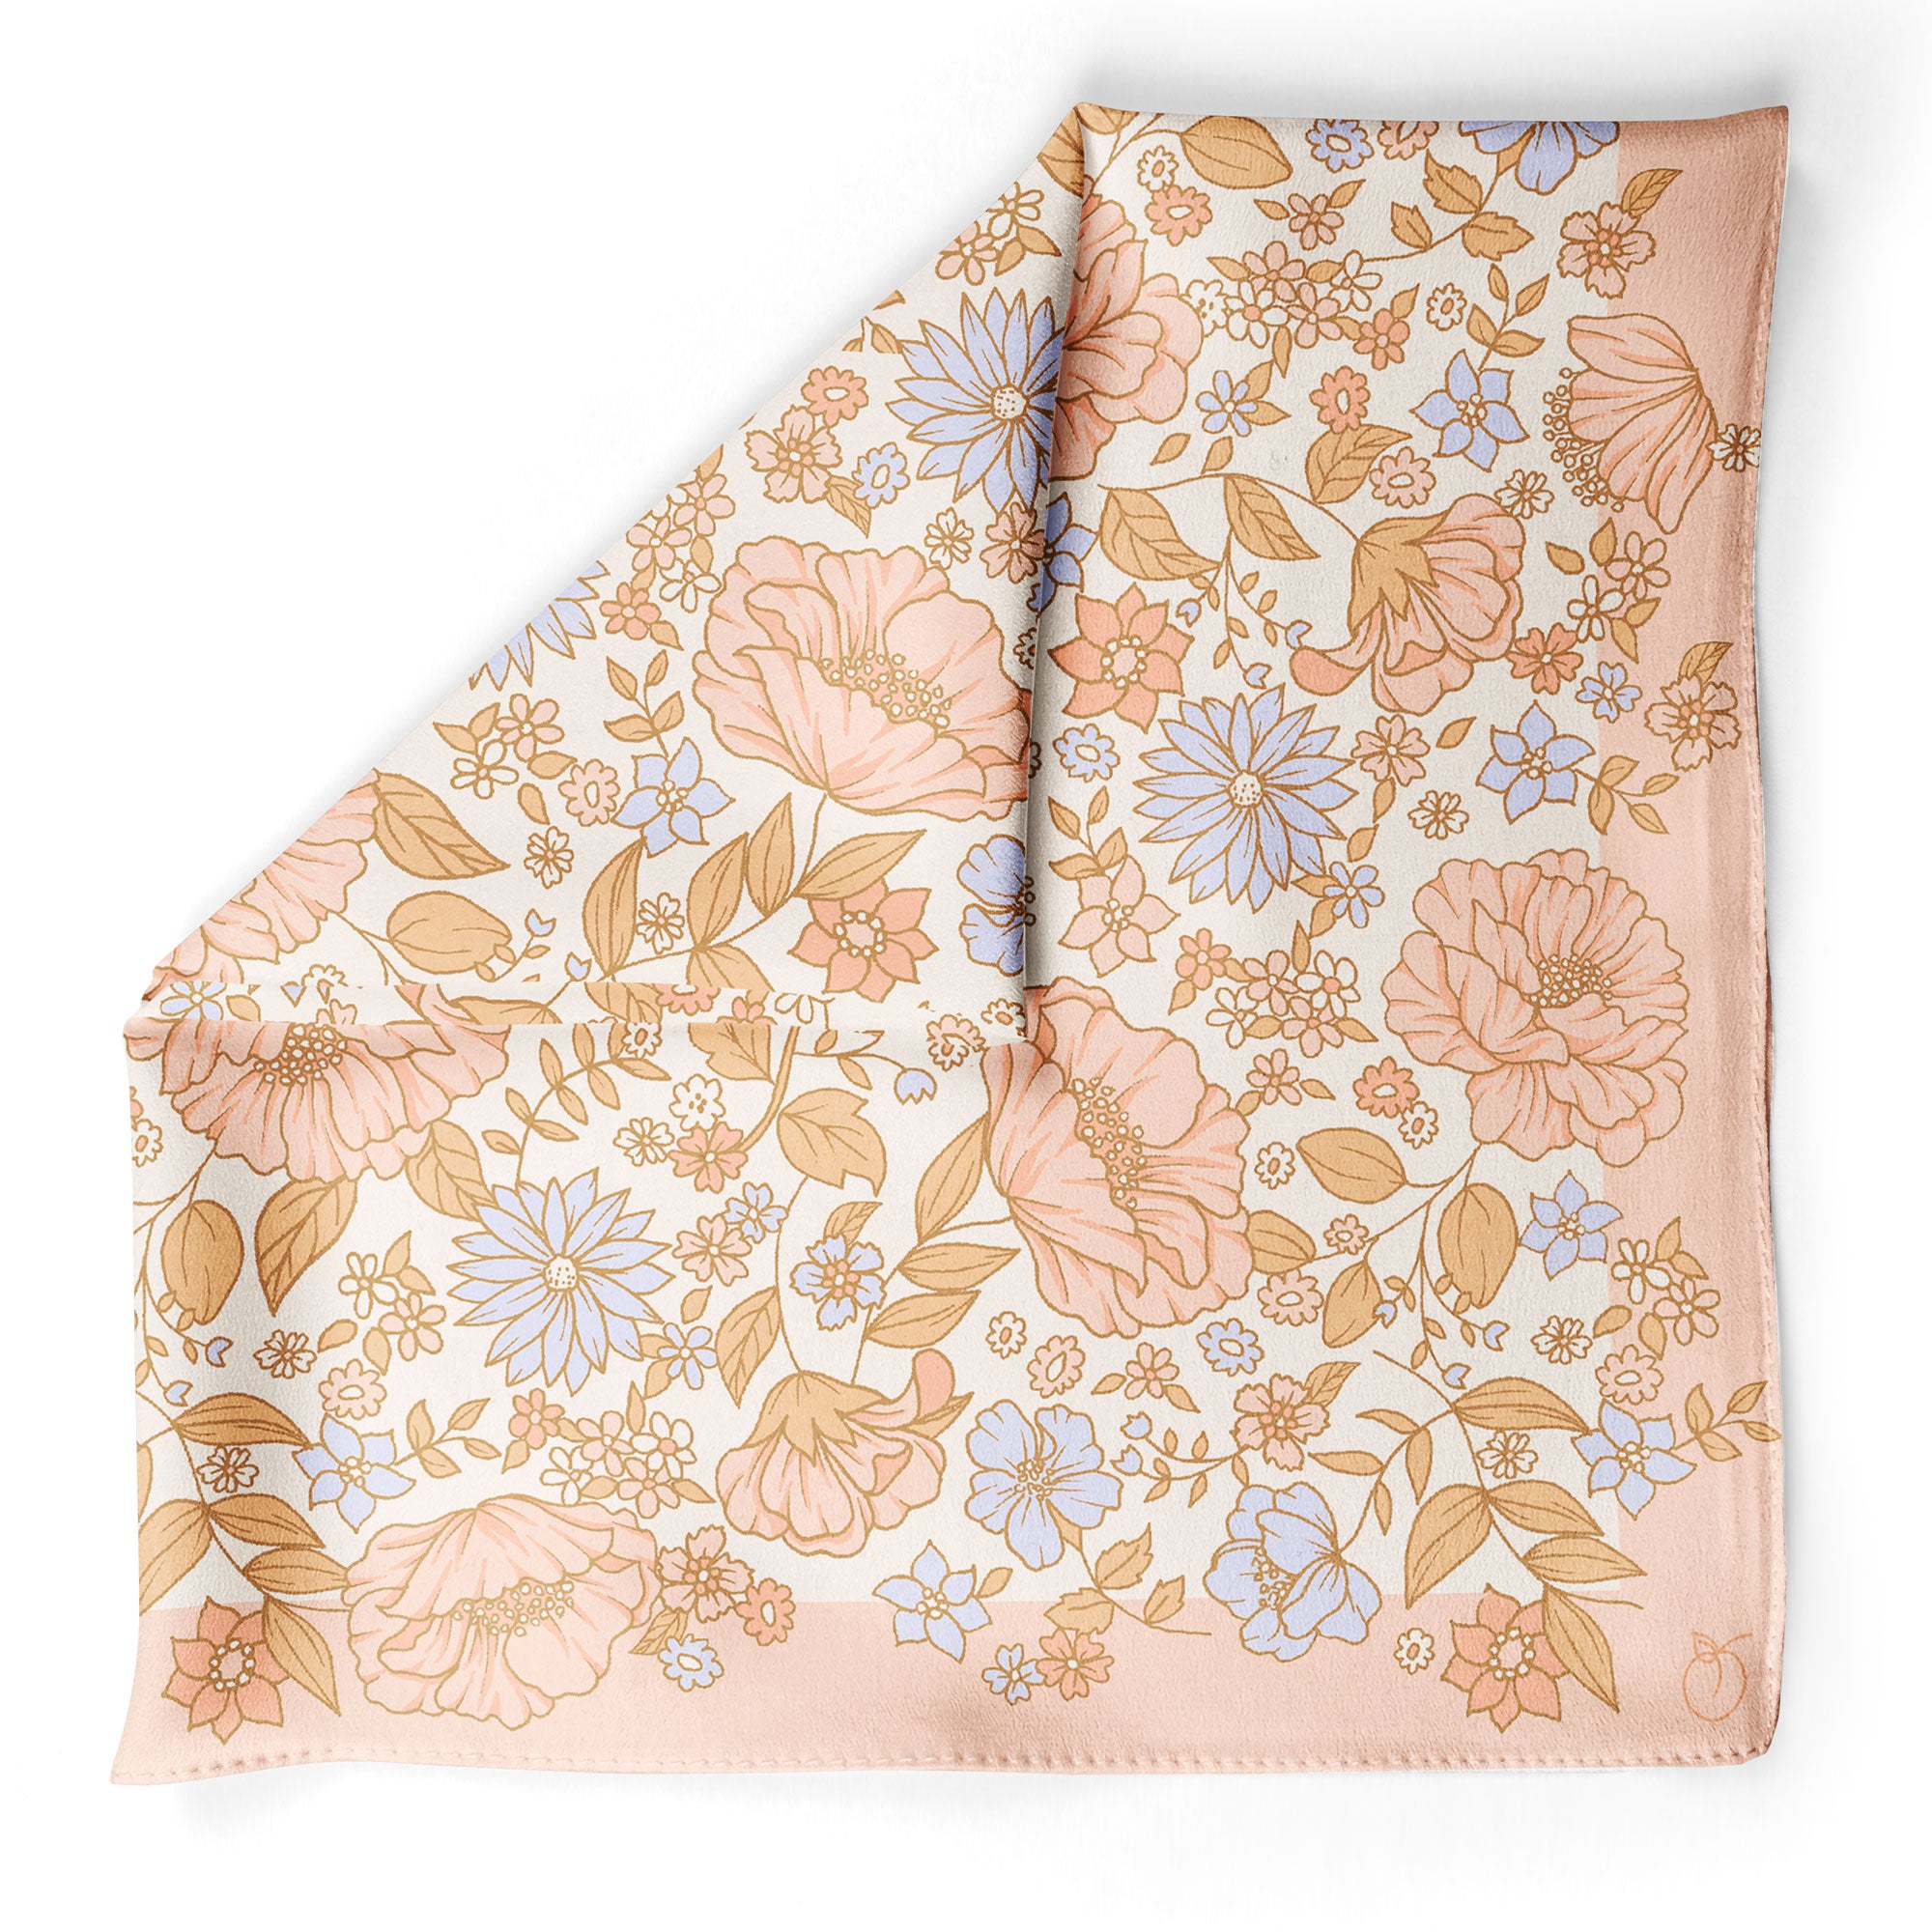 Peach & Blue Wildflowers Oversized Square Silk Scarf | Frankie Peach Australia